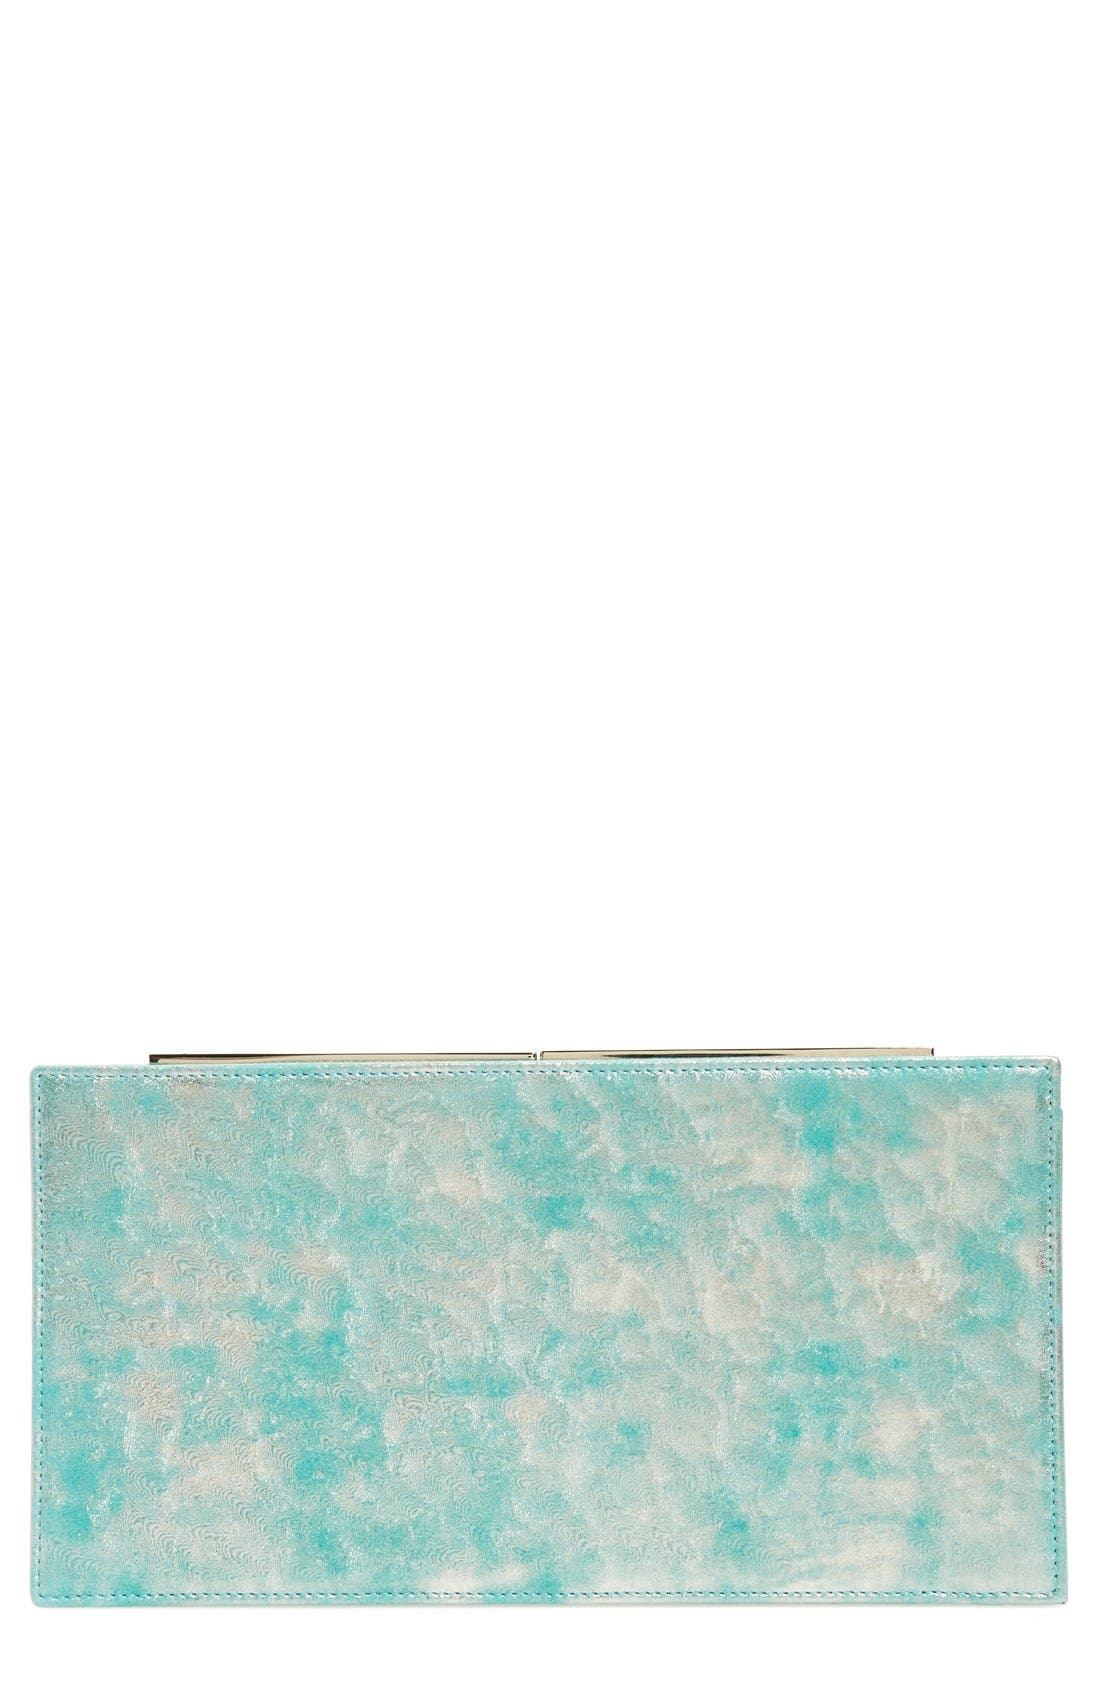 Alternate Image 1 Selected - Jimmy Choo 'Tux' Metallic Suede Clutch